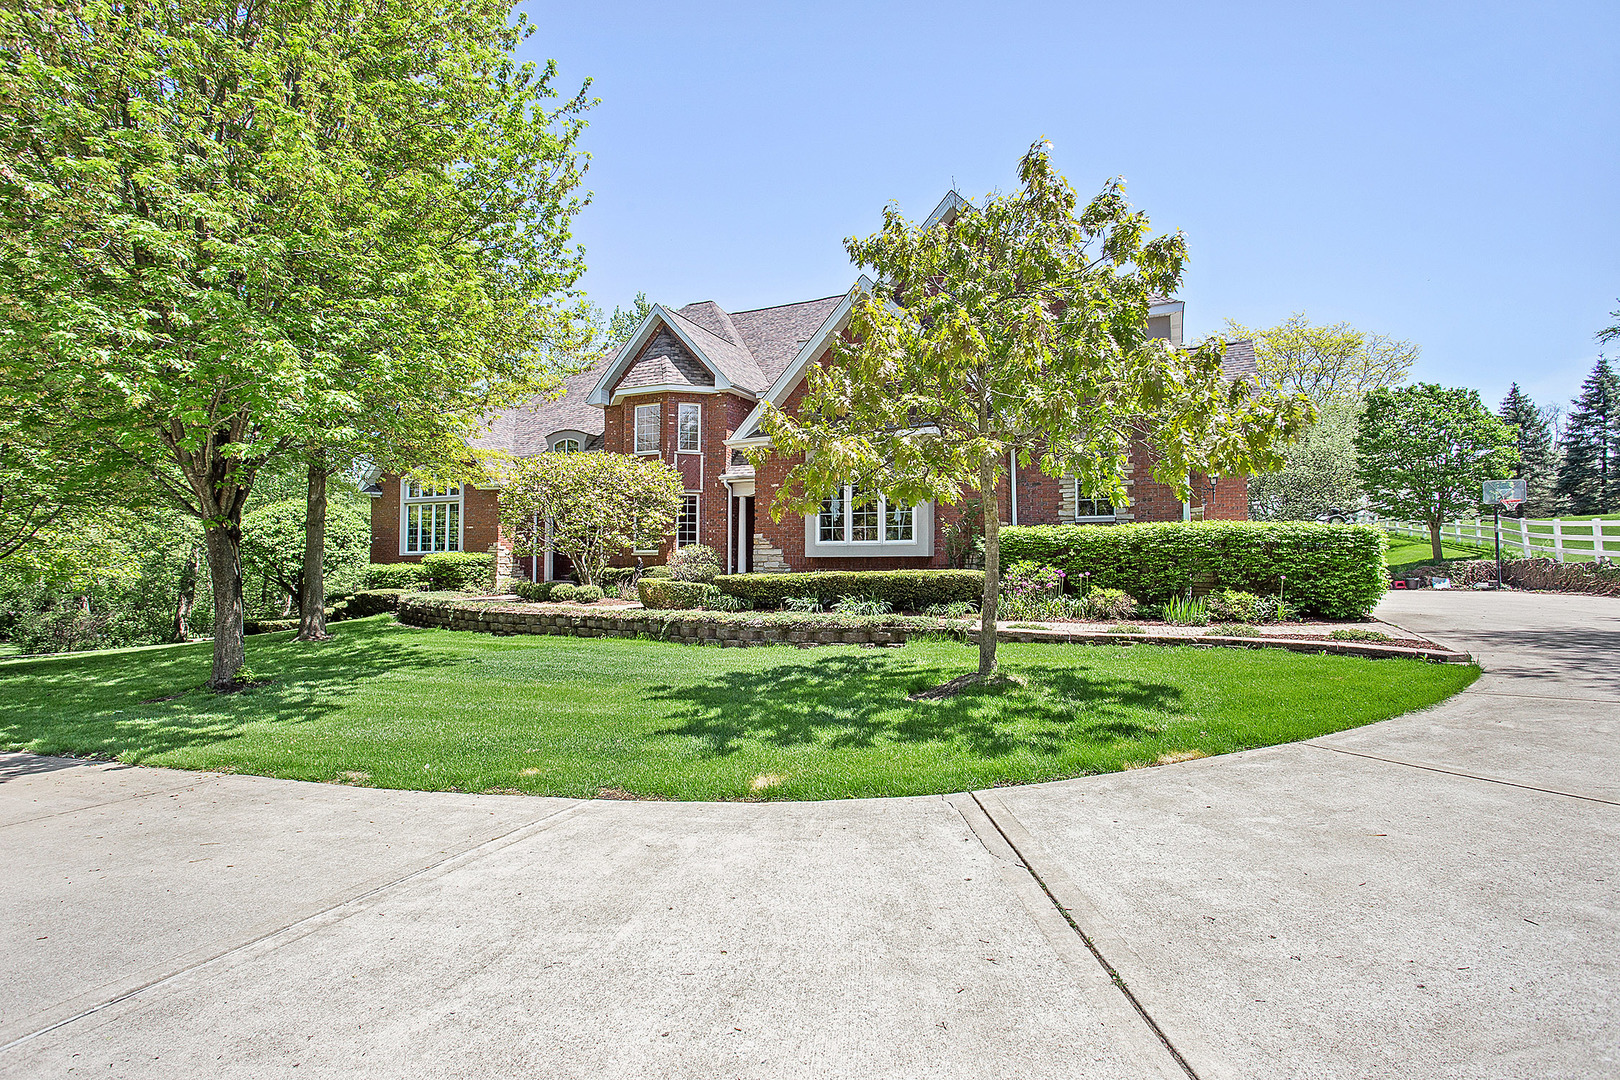 10801 Crystal Springs Lane, Orland Park, Illinois 5 Bedroom as one of Homes & Land Real Estate